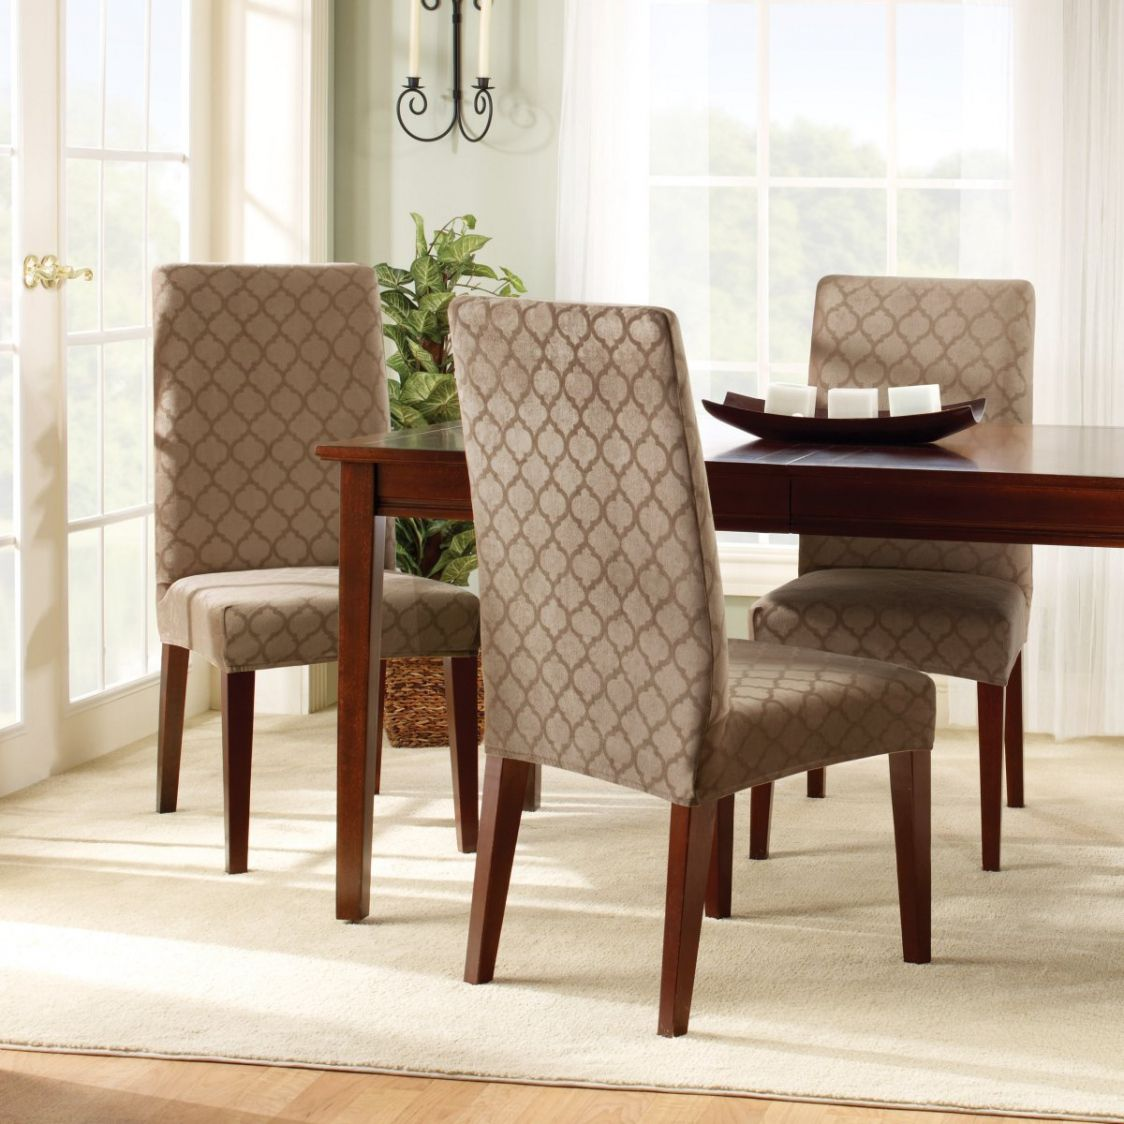 Sure Fit Dining Room Chair Covers   Cool Rustic Furniture Check More At  Http:/ Great Pictures